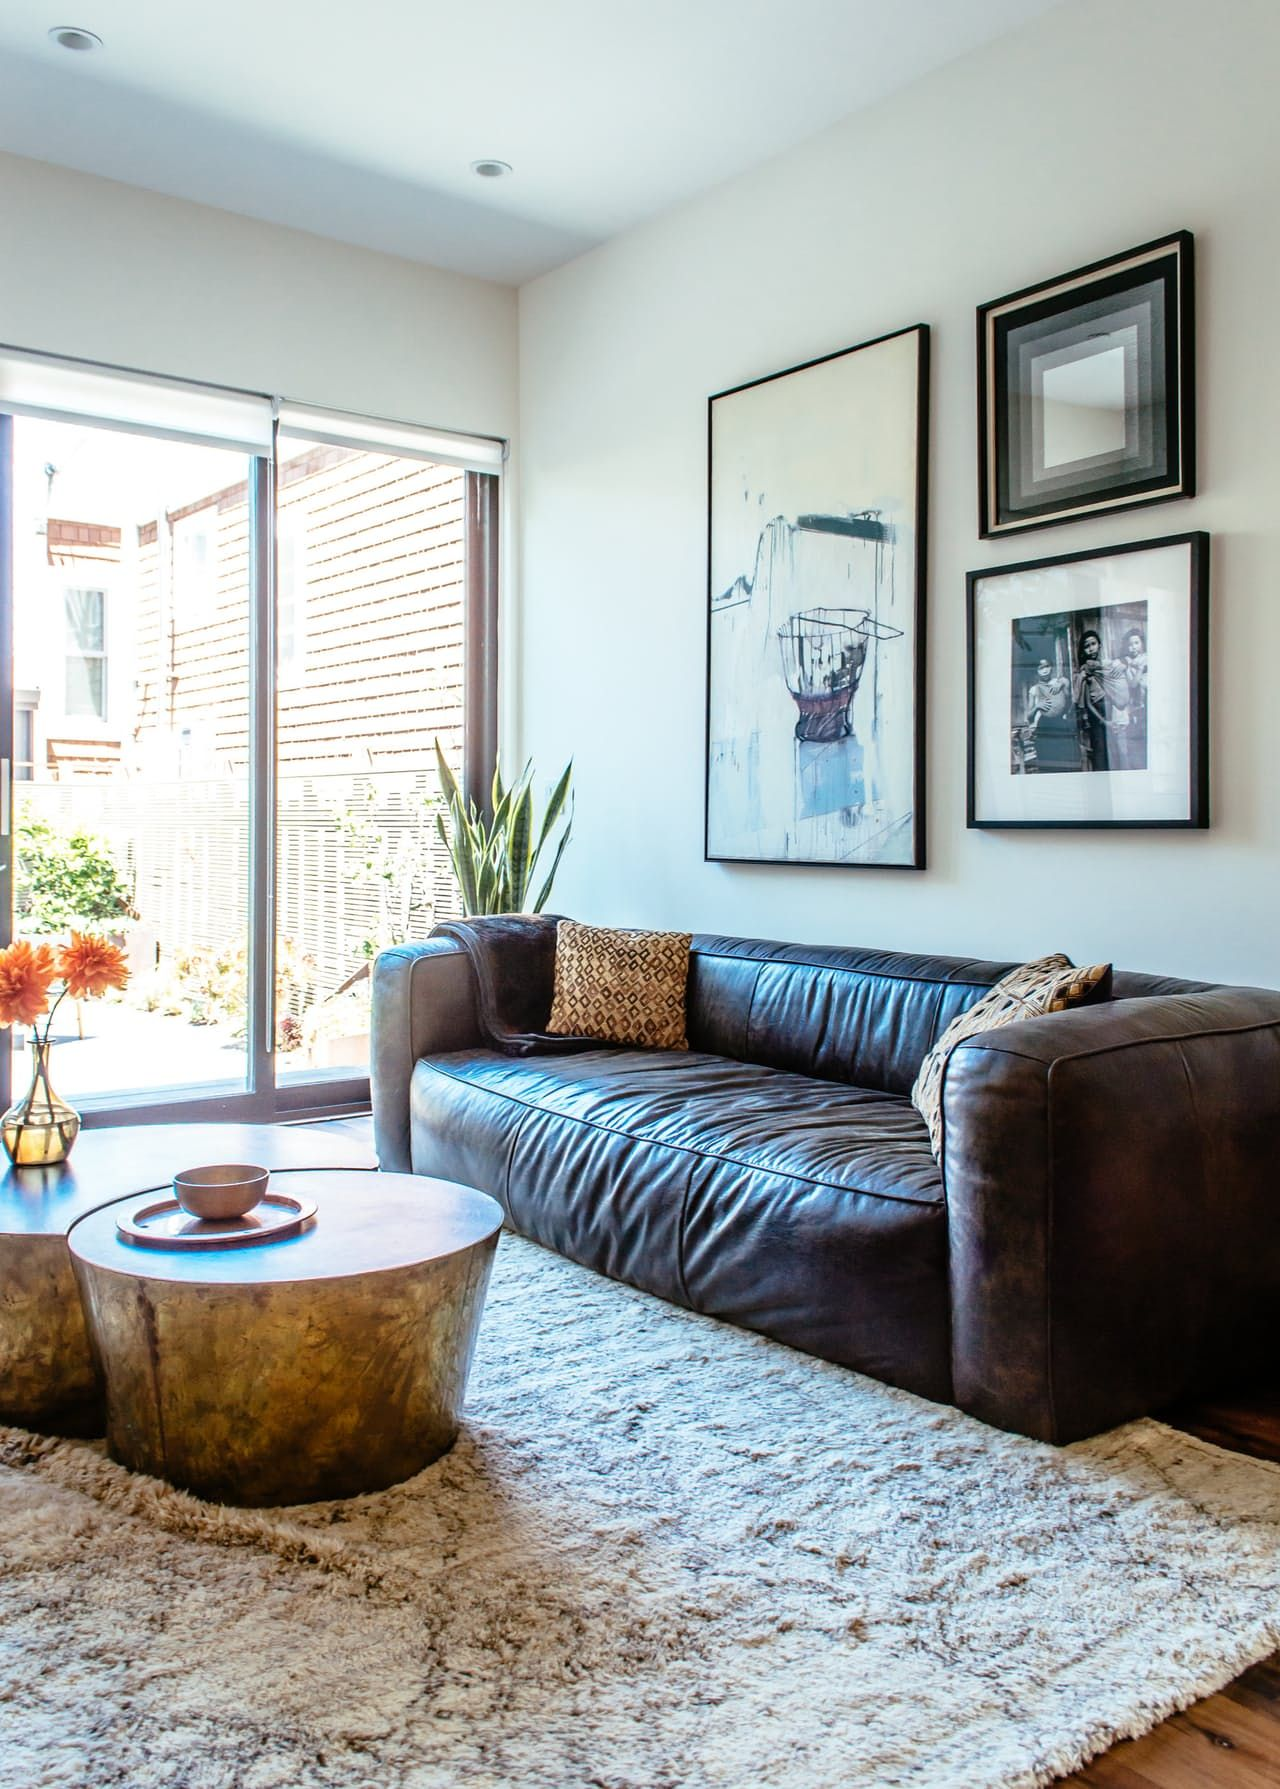 Warm, Textured & Classic Modern Style in San Francisco